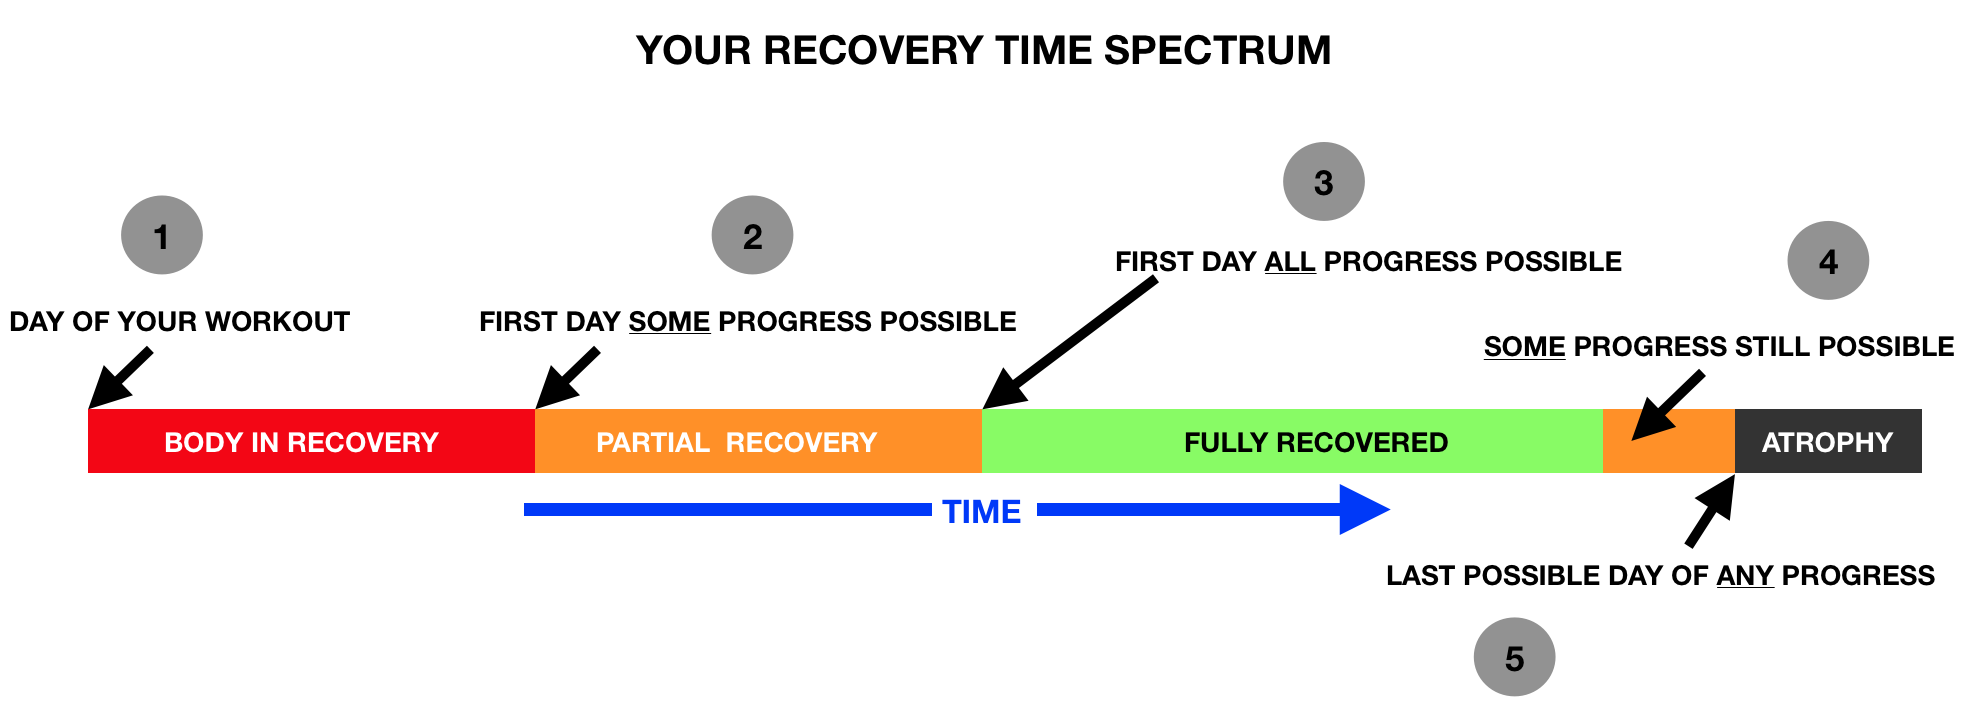 Your Recovery Time Spectrum